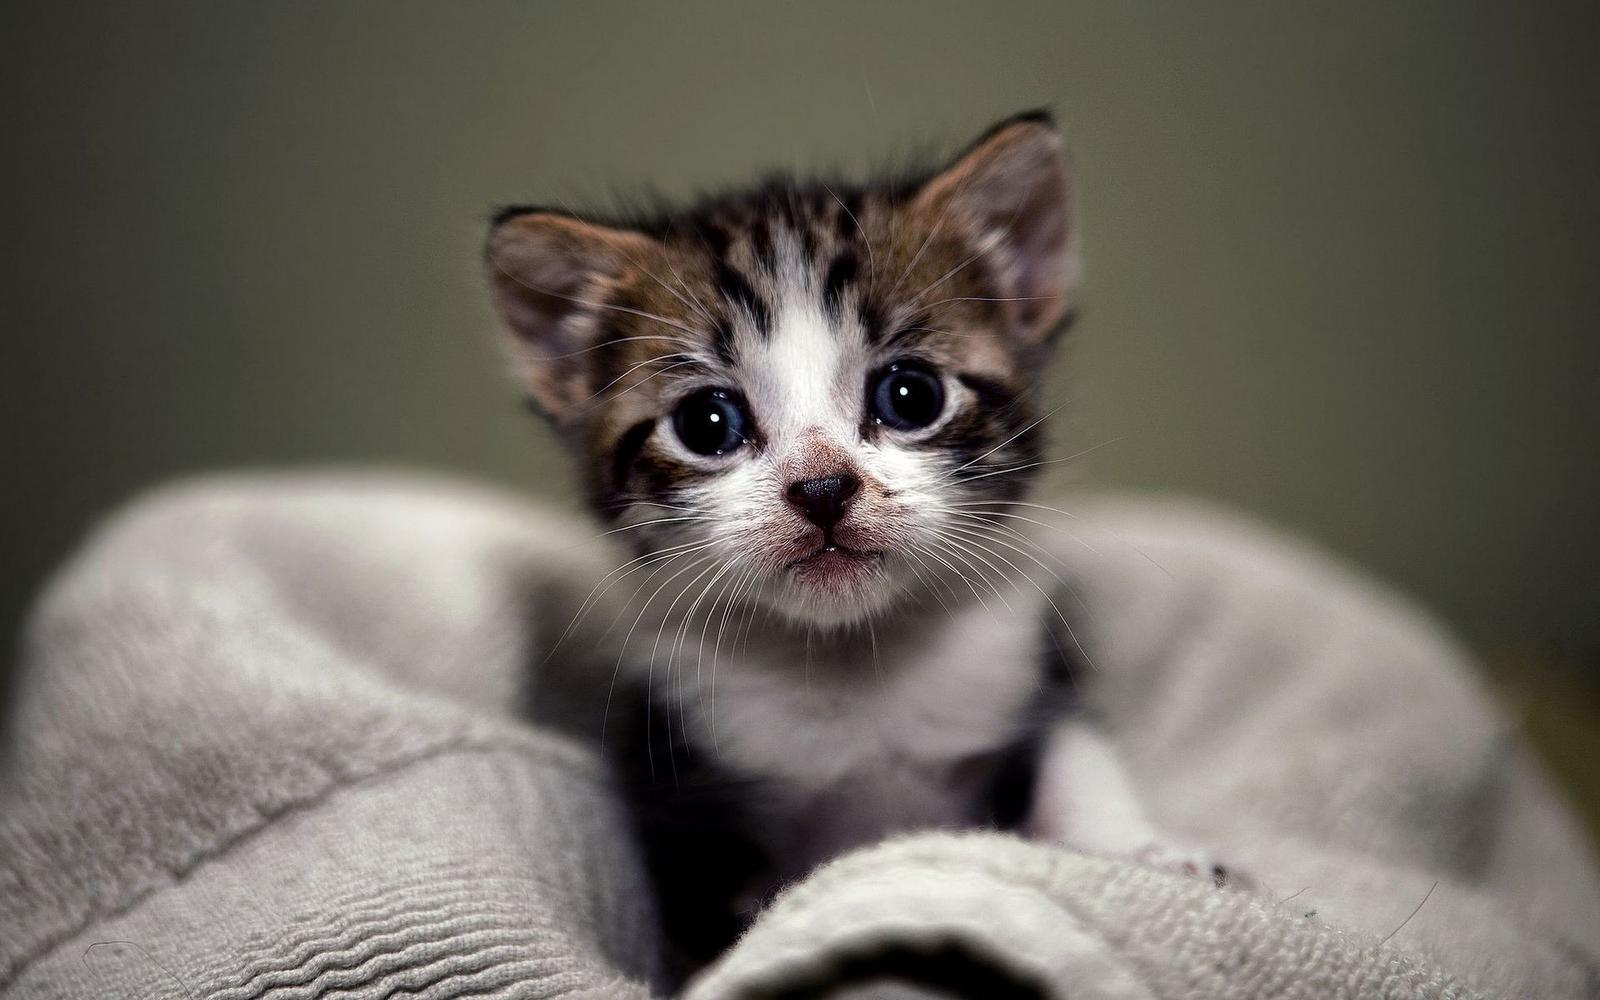 Cute Kittens Wallpapers Hd Images & Pictures - Becuo